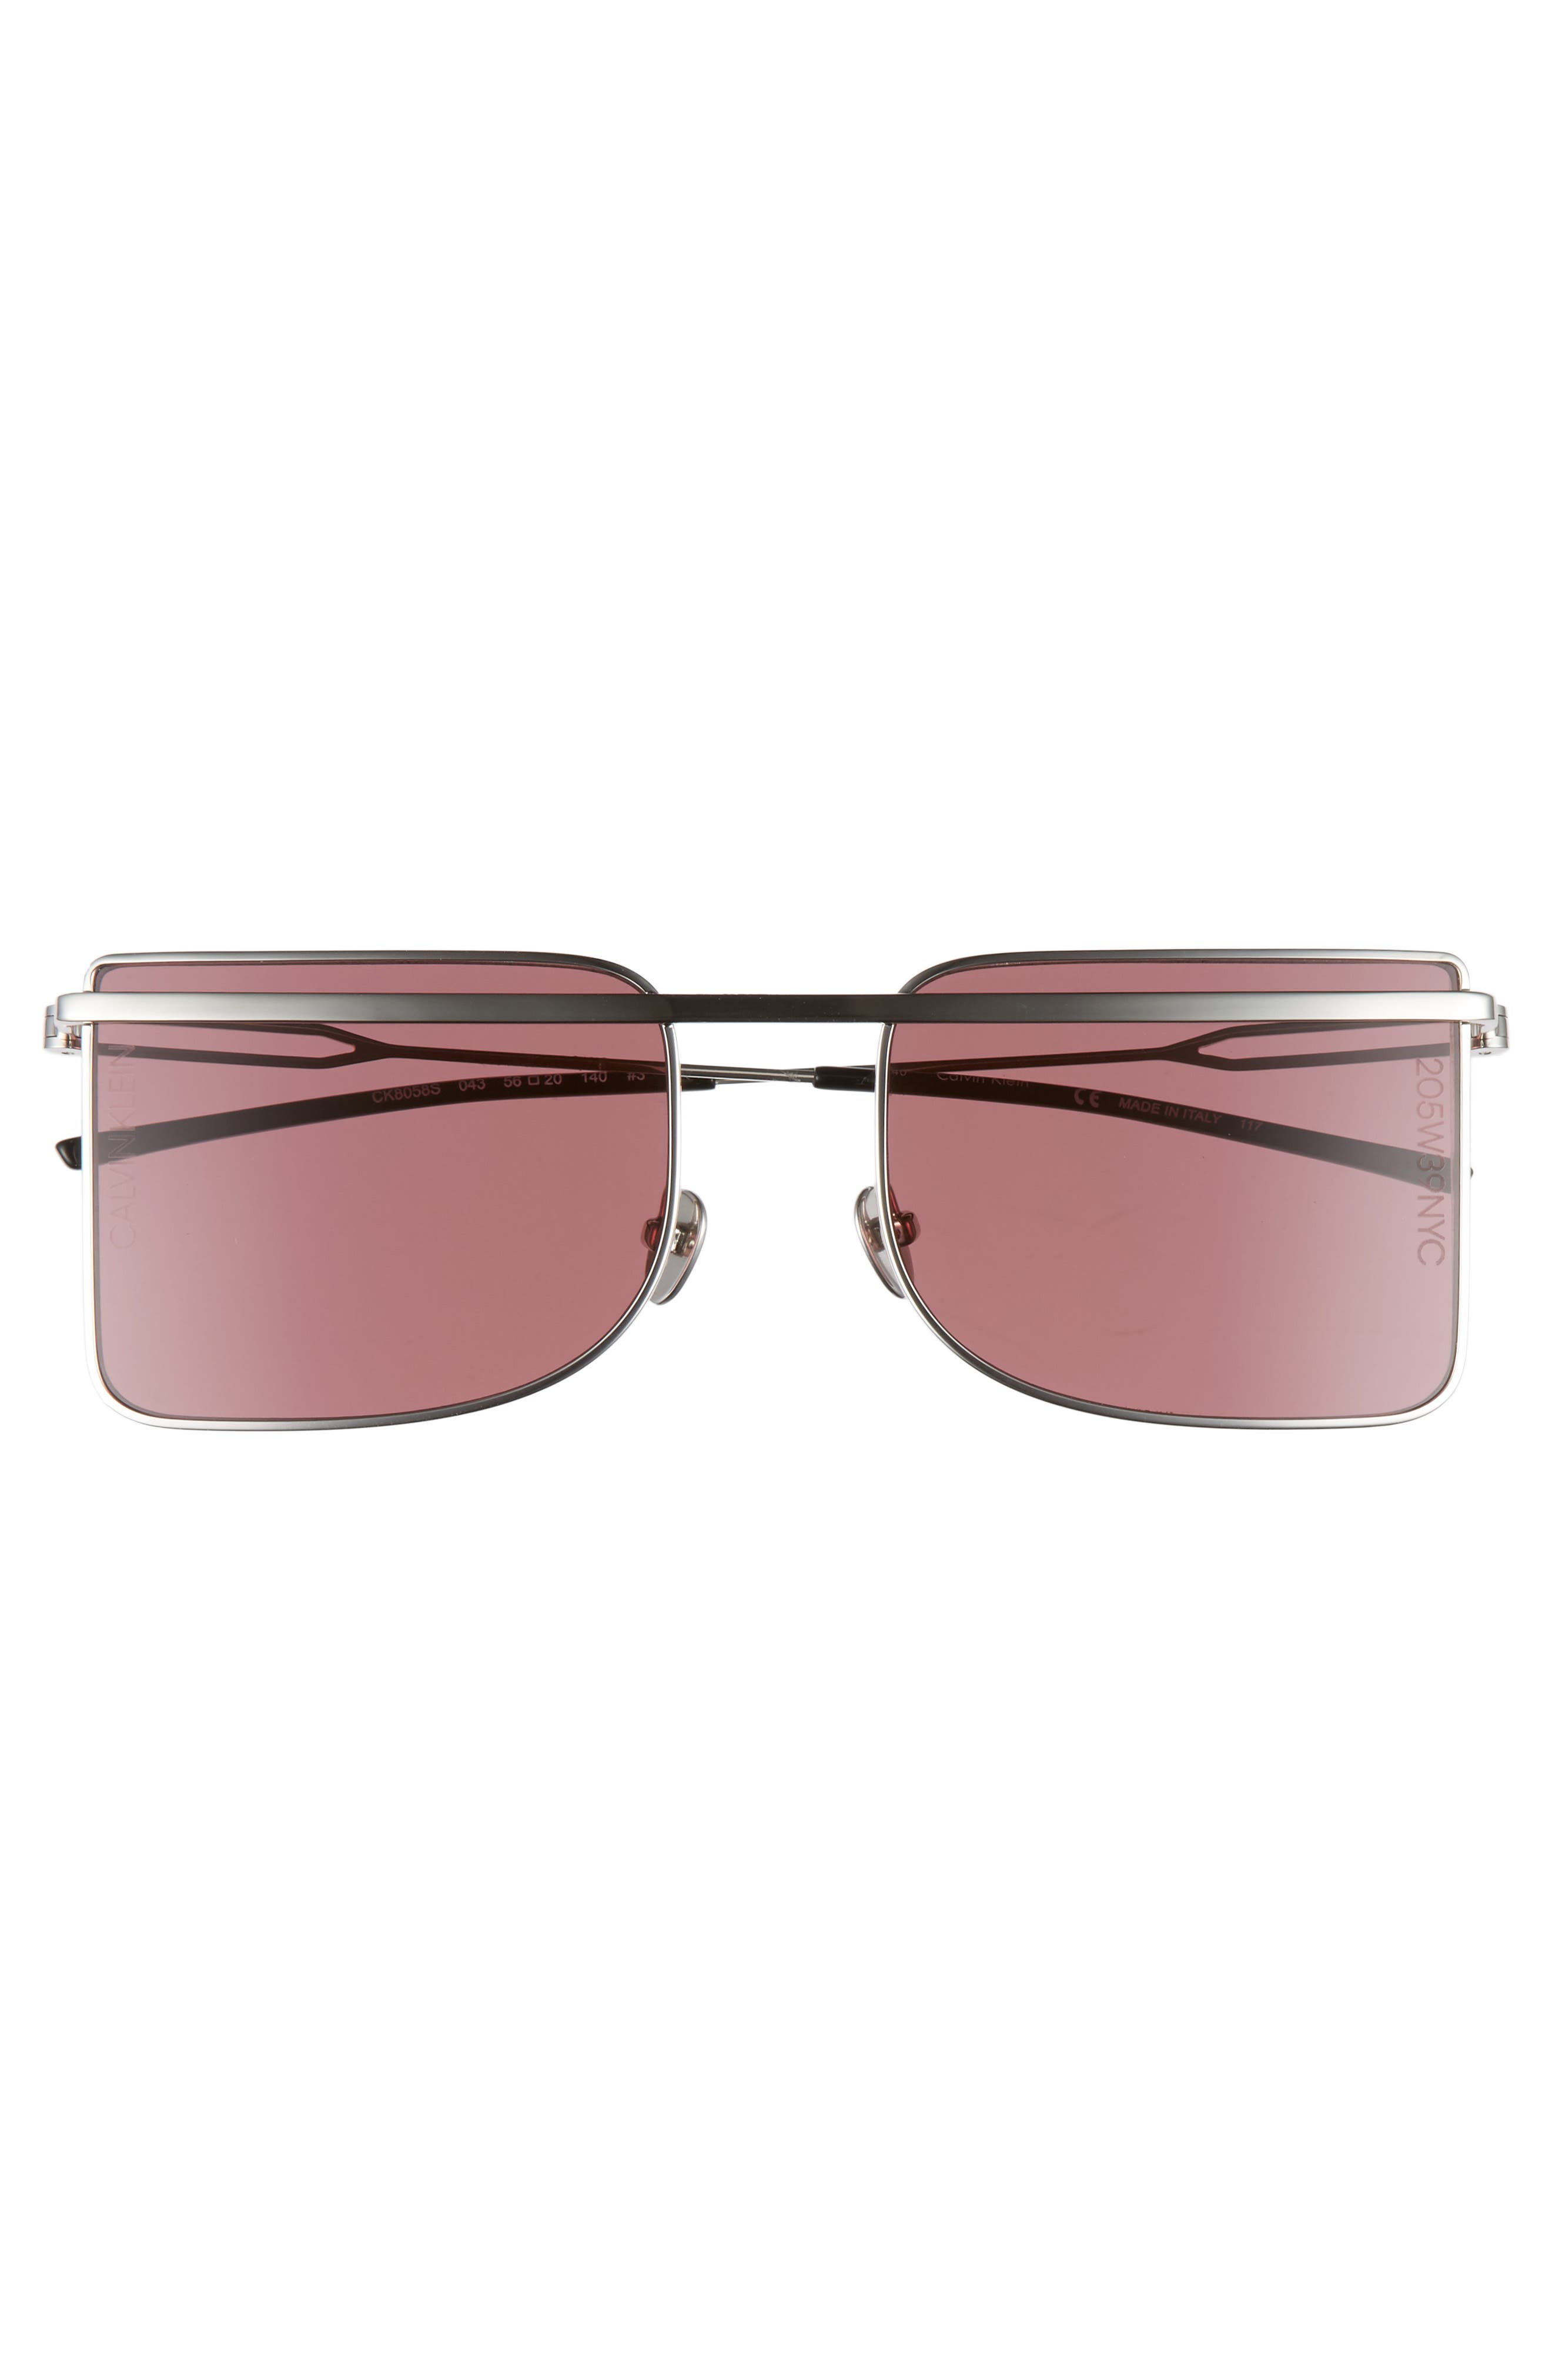 Alternate Image 2  - CALVIN KLEIN 205W39NYC 56mm Butterfly Sunglasses